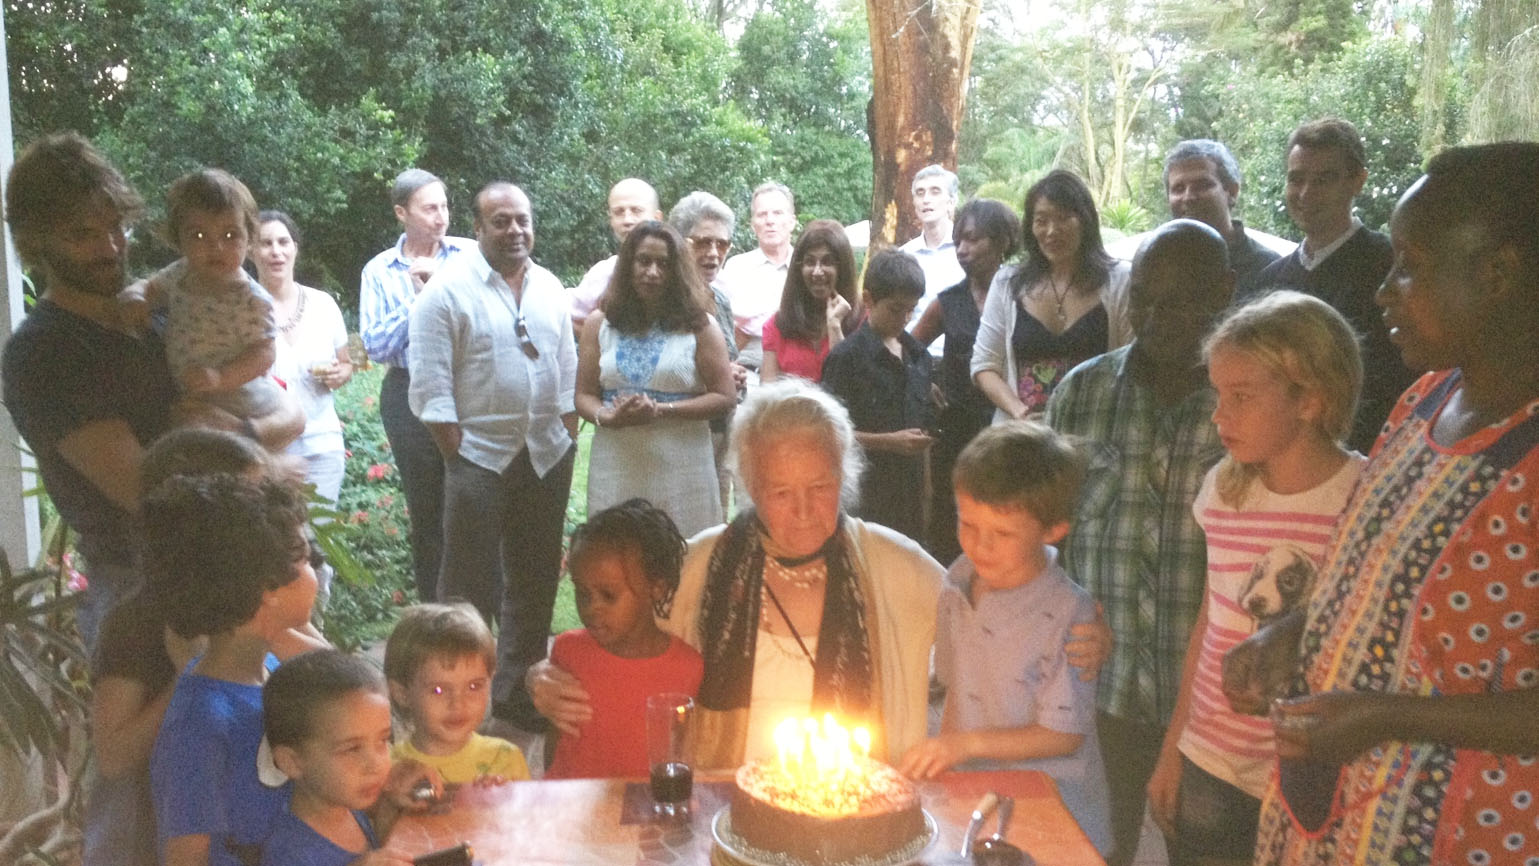 The author's mother celebrates her 93rd birthday in Kenya